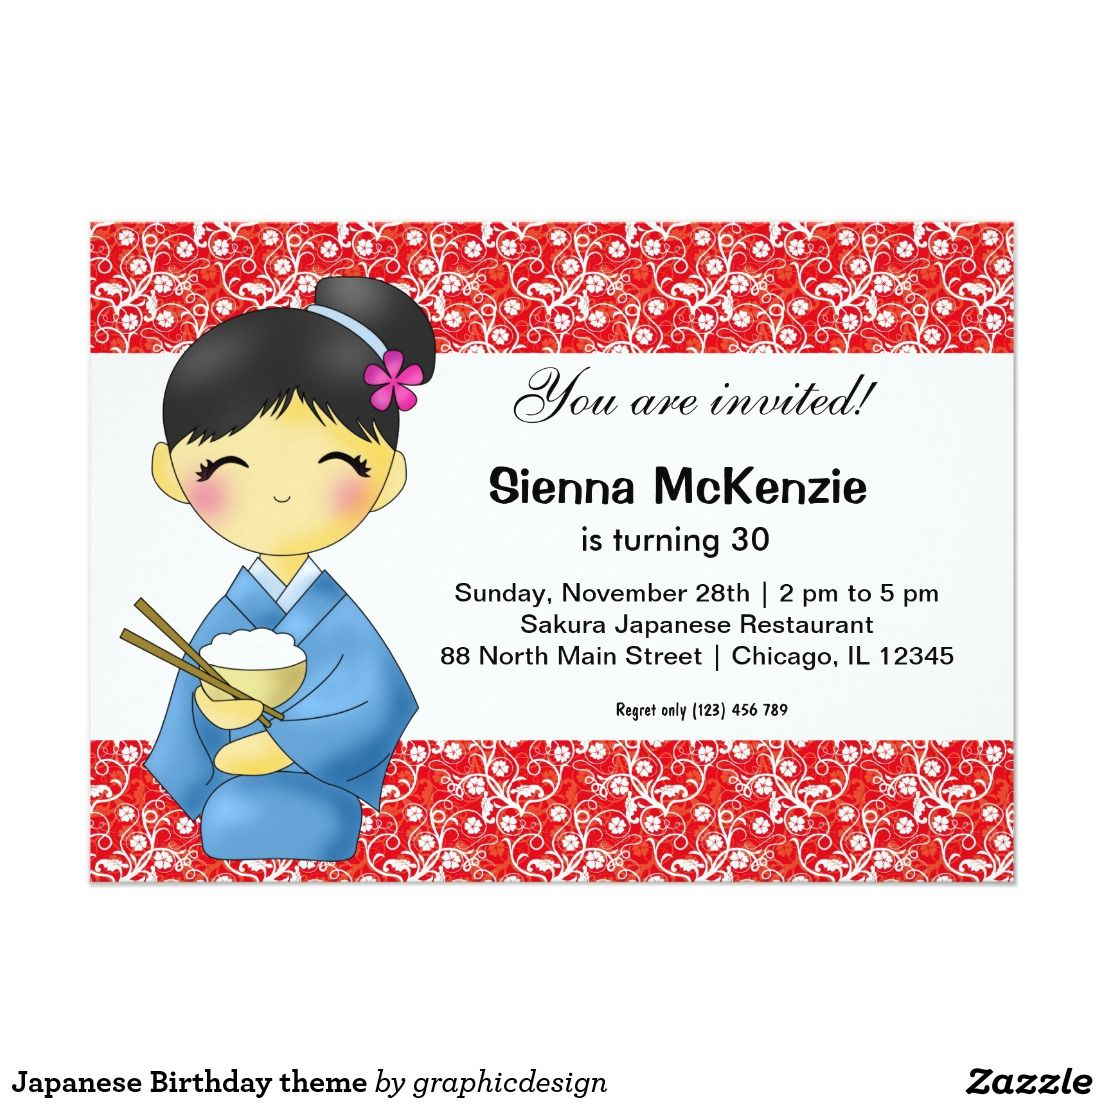 Japanese birthday theme invitation stuff sold on zazzle japanese birthday invitation asian available in different products check more at zazzlecelebrationideas filmwisefo